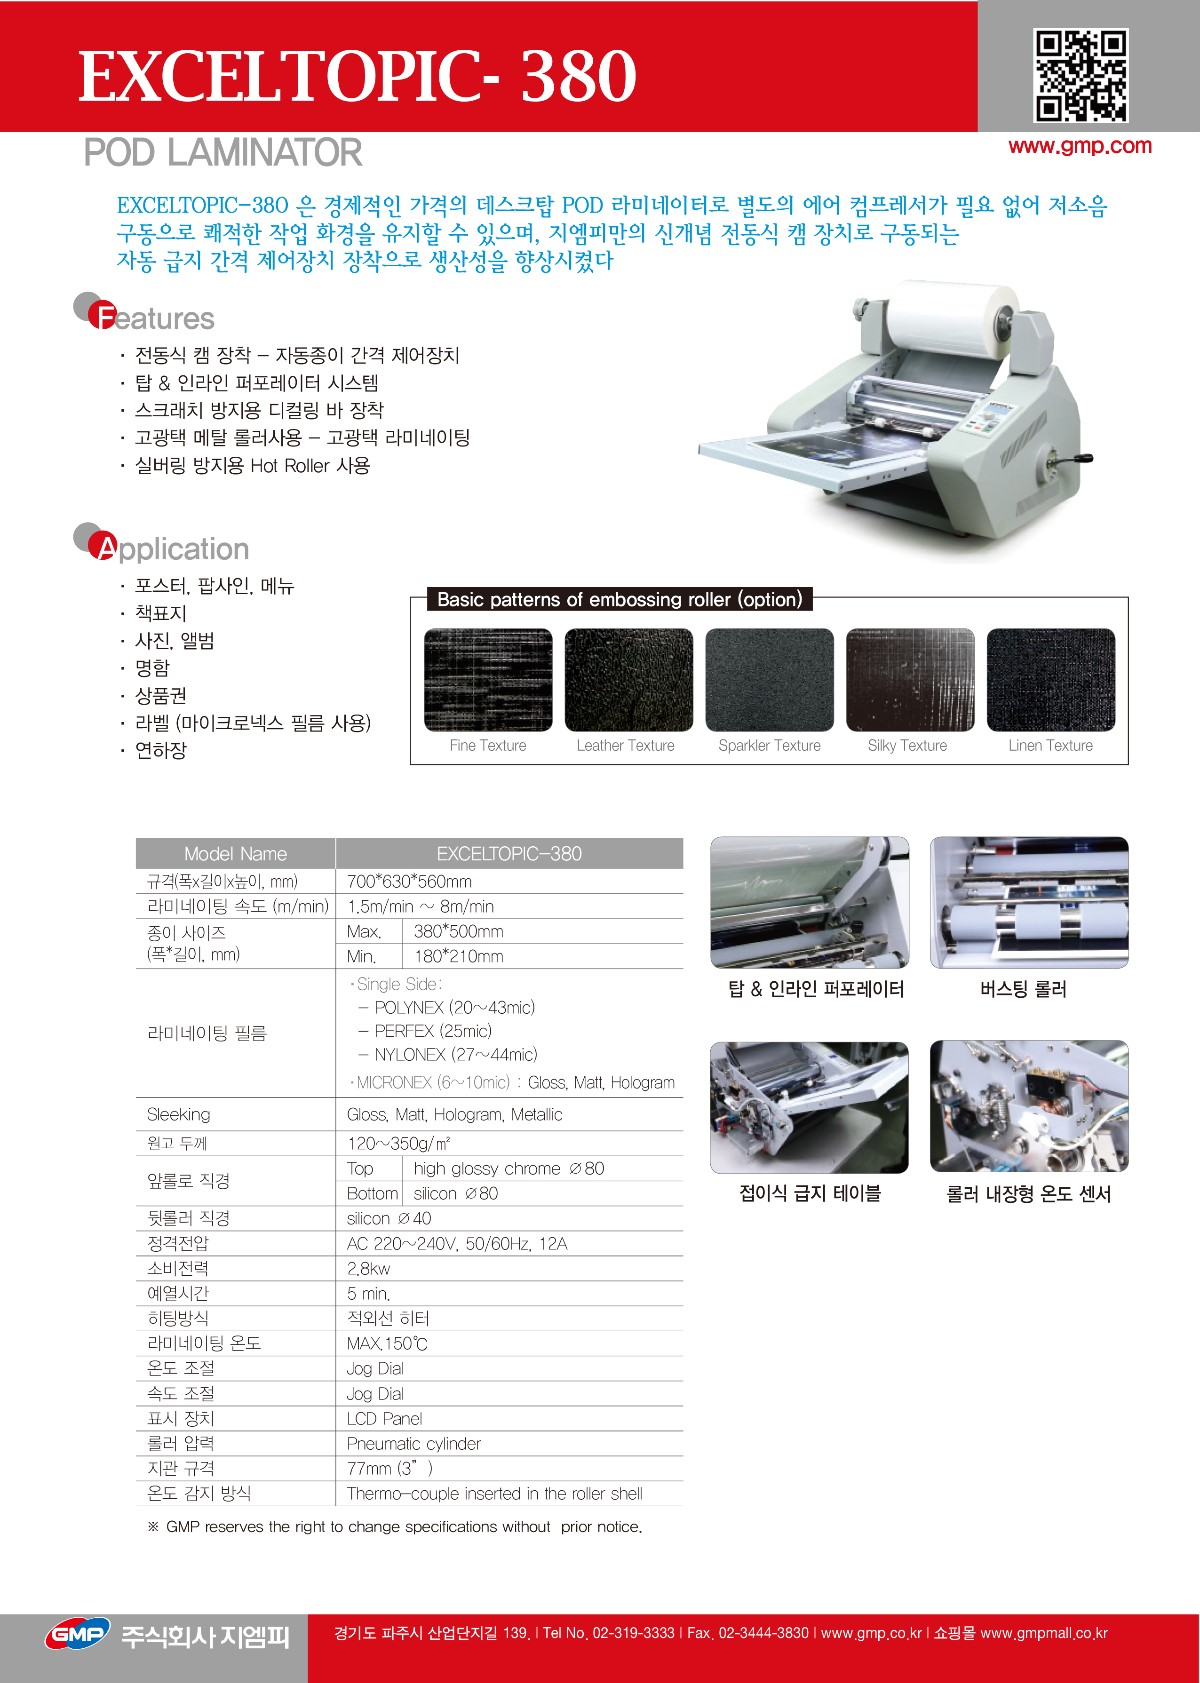 NEW-EXCELTOPIC-380_국문_-2.jpg